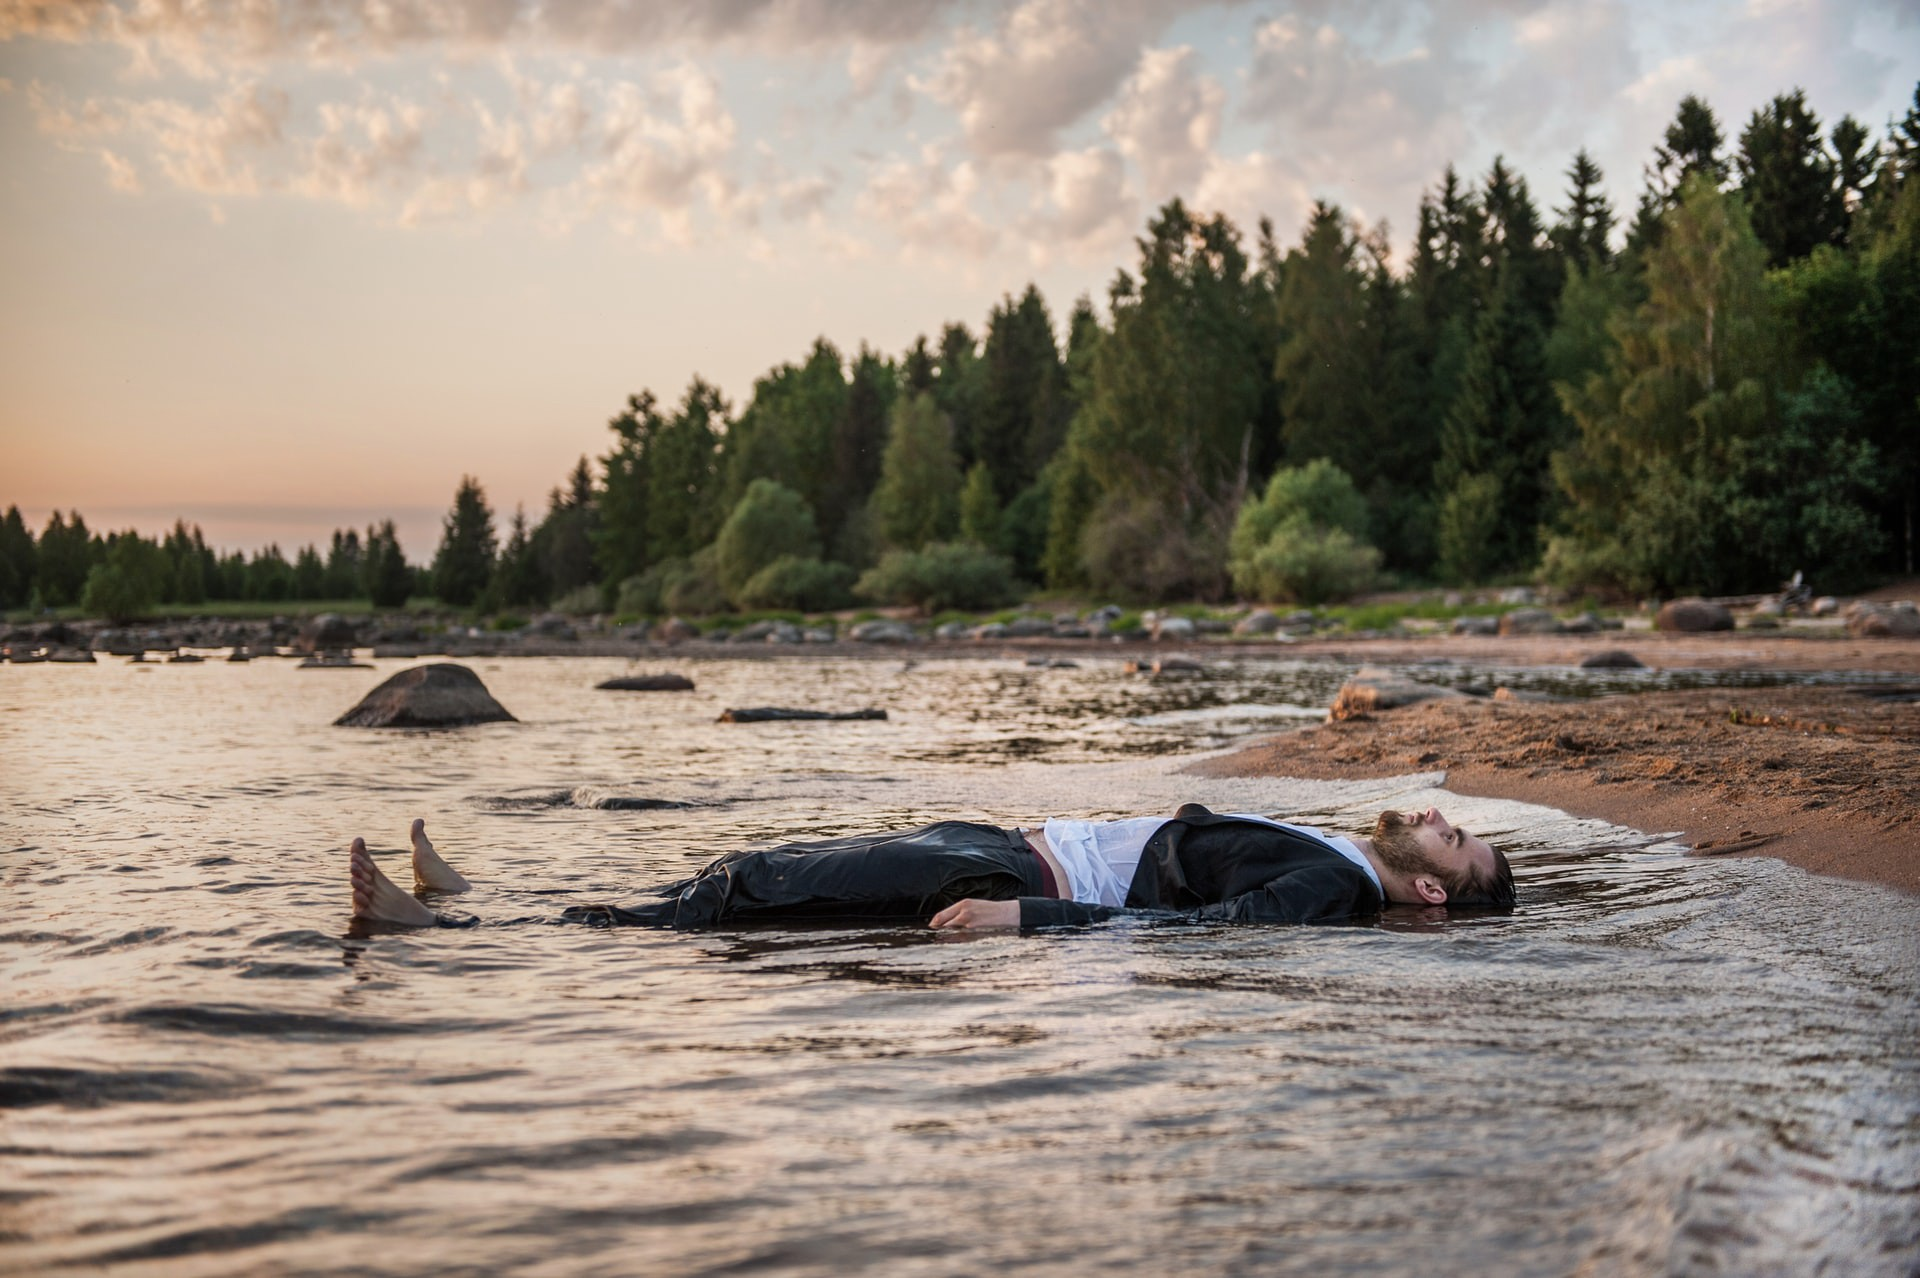 A man lying in the water.